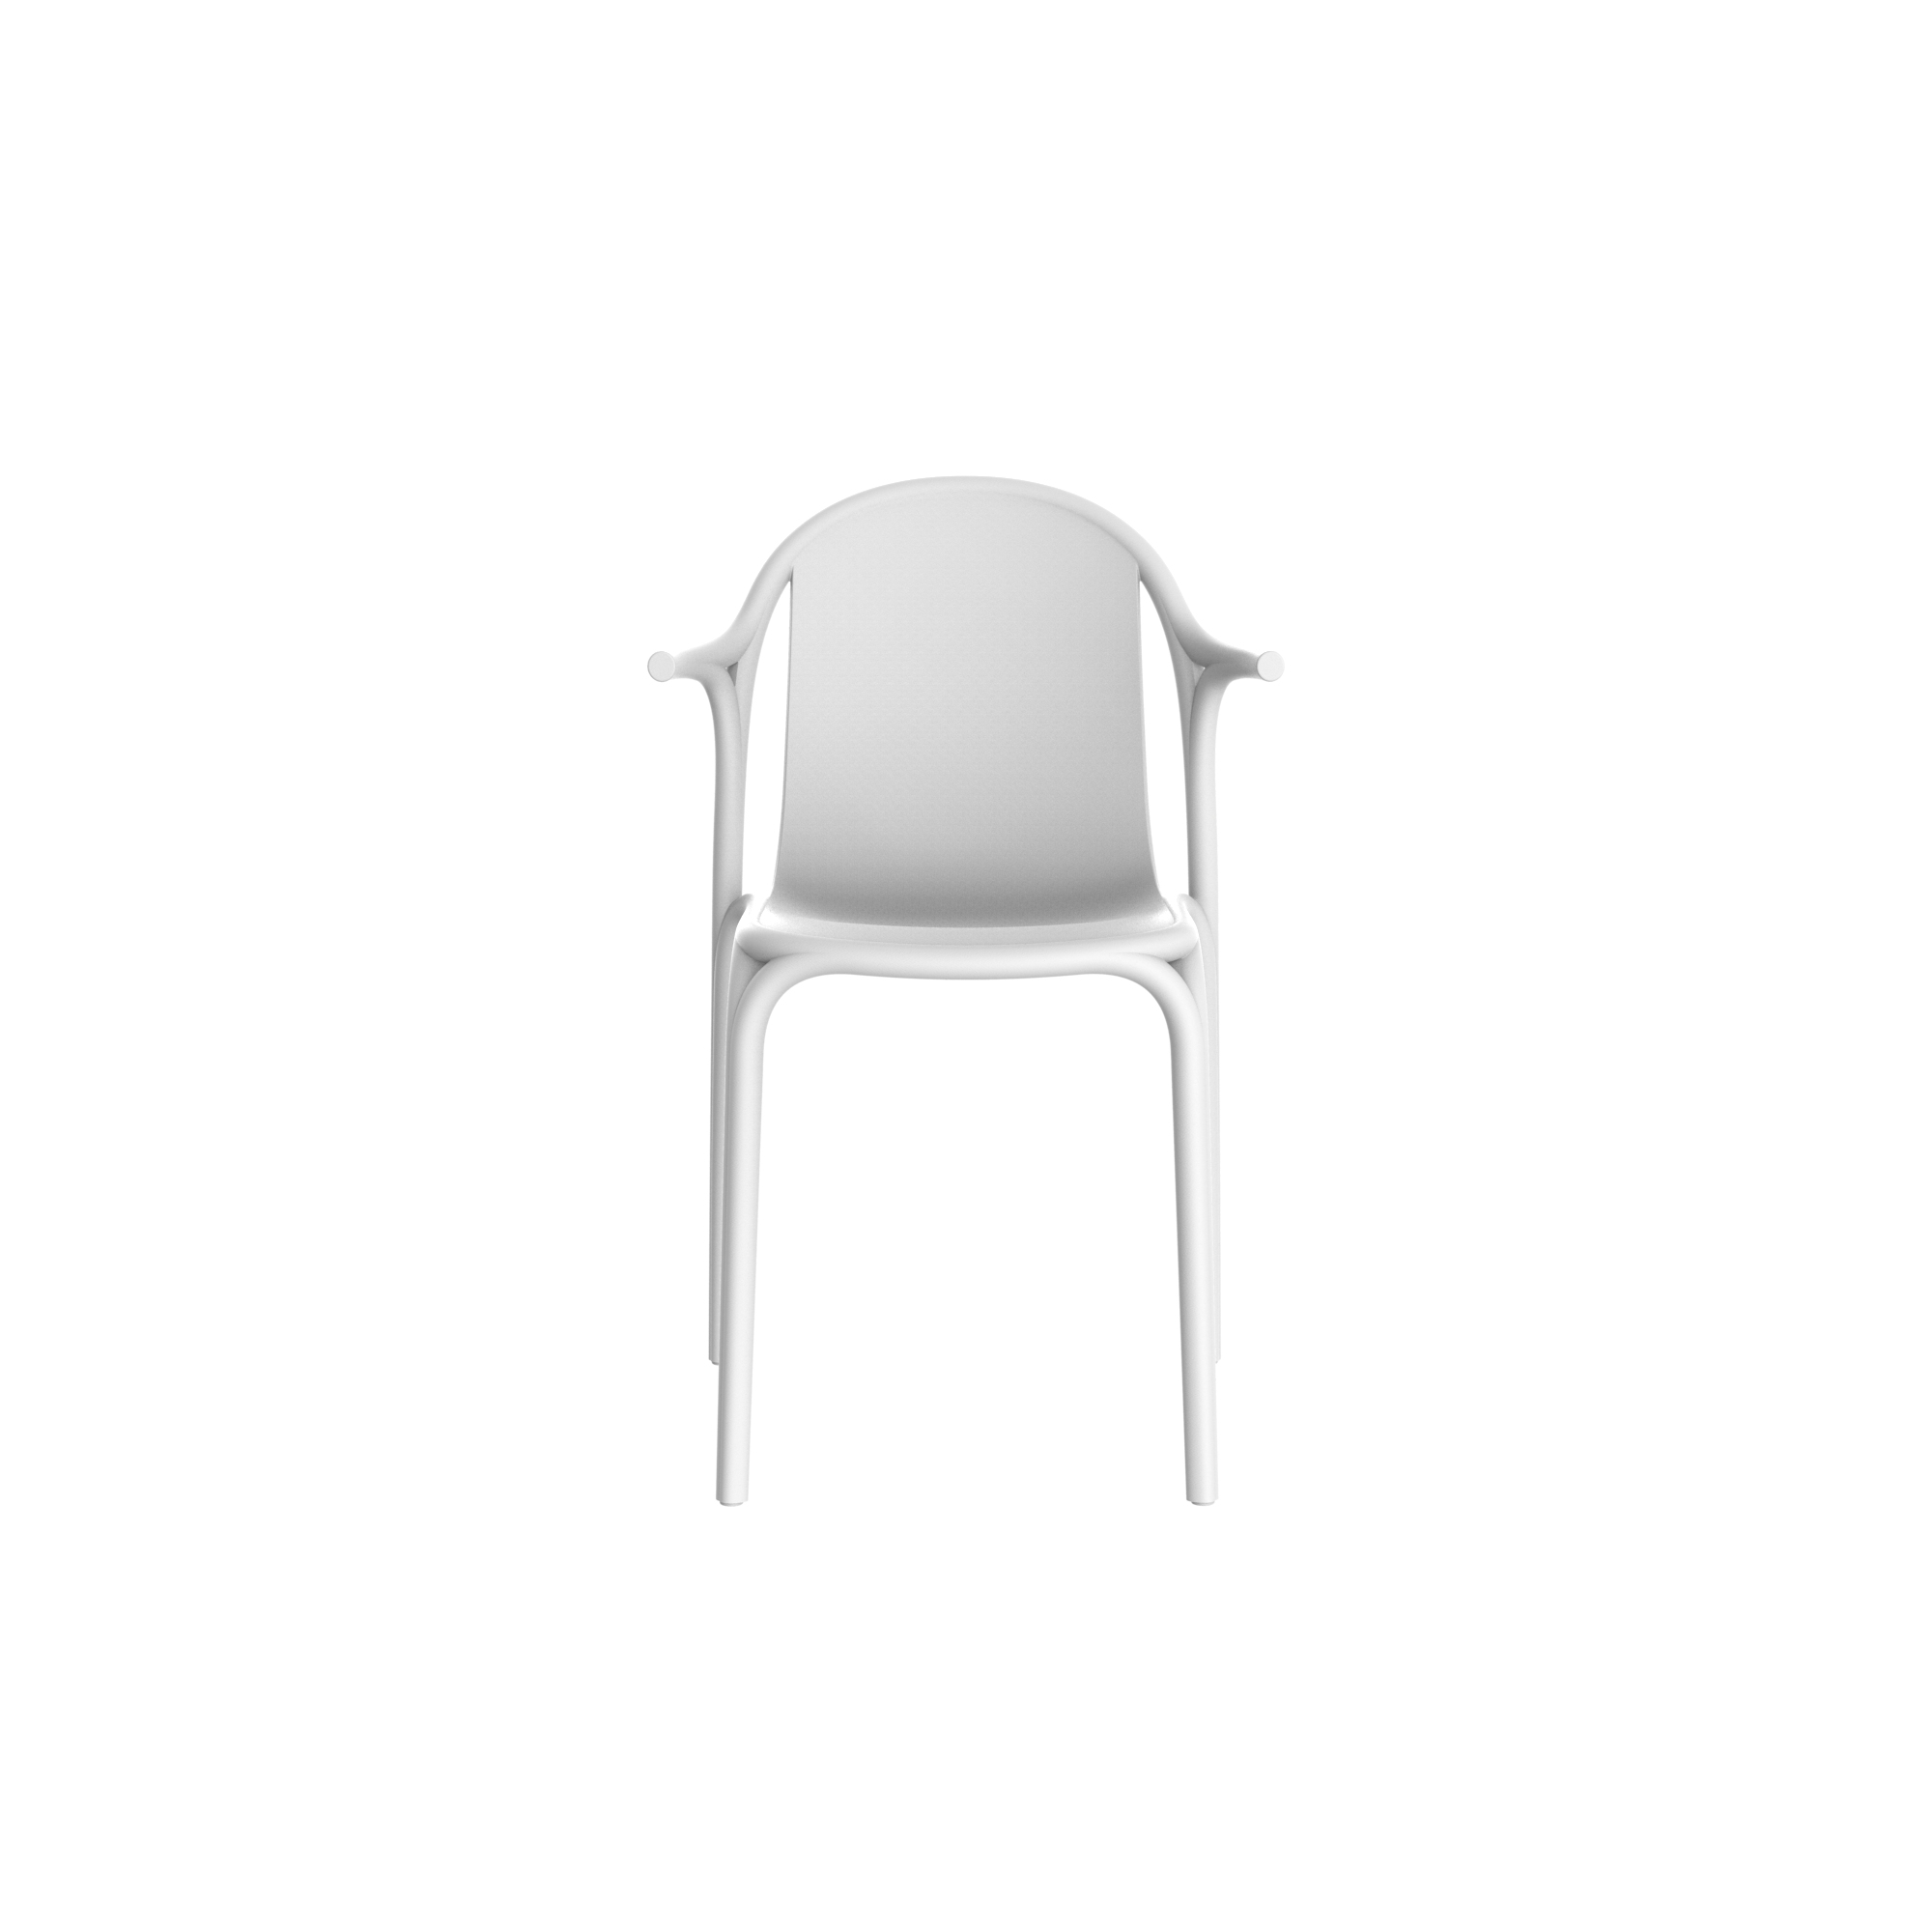 BROOKLYN_CHAIR_OUTDOOR_DESIGN_EUGENI_QUITLLET_VONDOM_SILLA_DISENO_EXTERIOR (4)